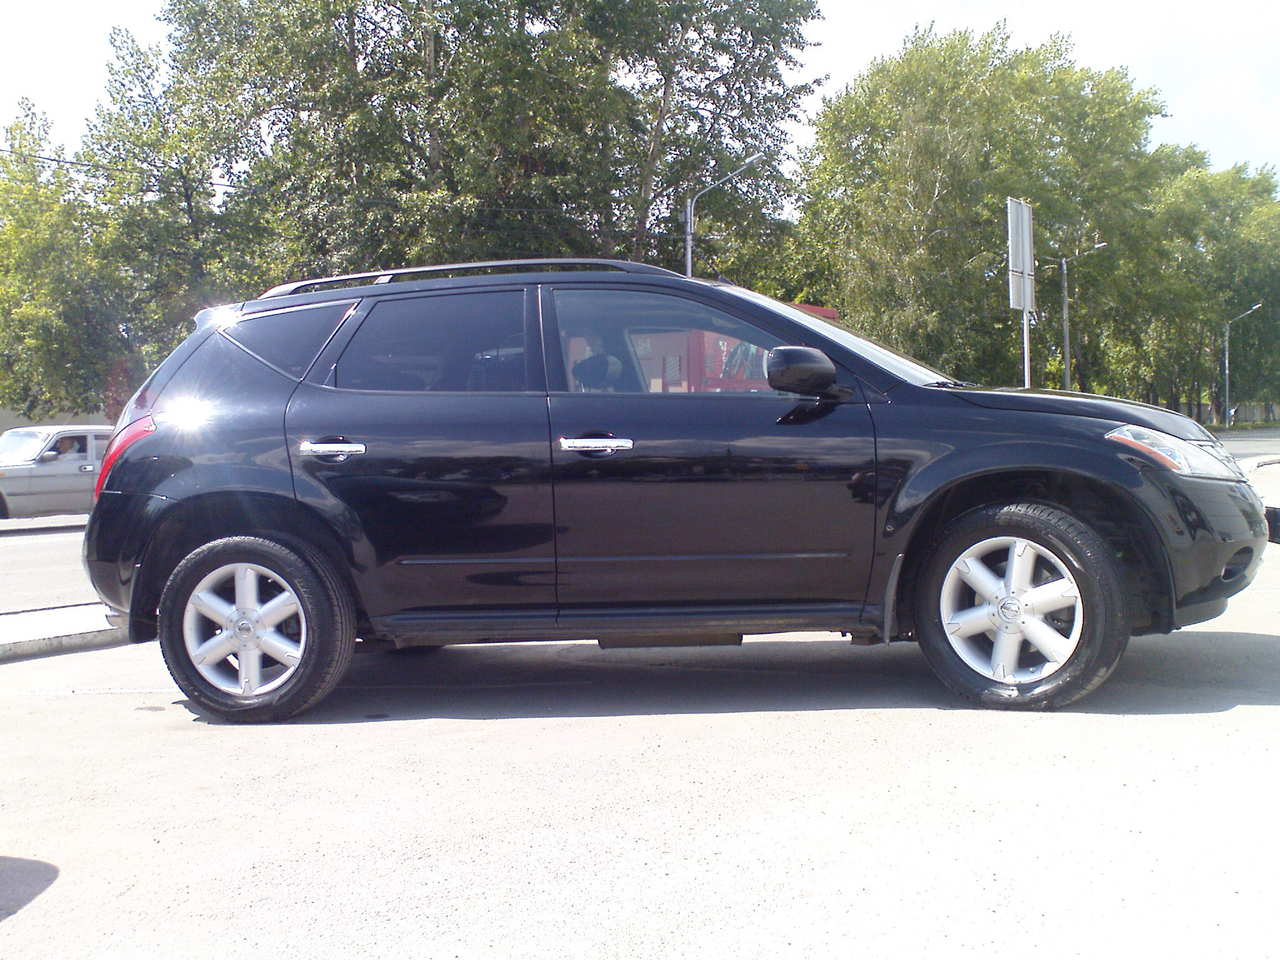 used 2002 nissan murano photos 3500cc gasoline cvt for sale. Black Bedroom Furniture Sets. Home Design Ideas